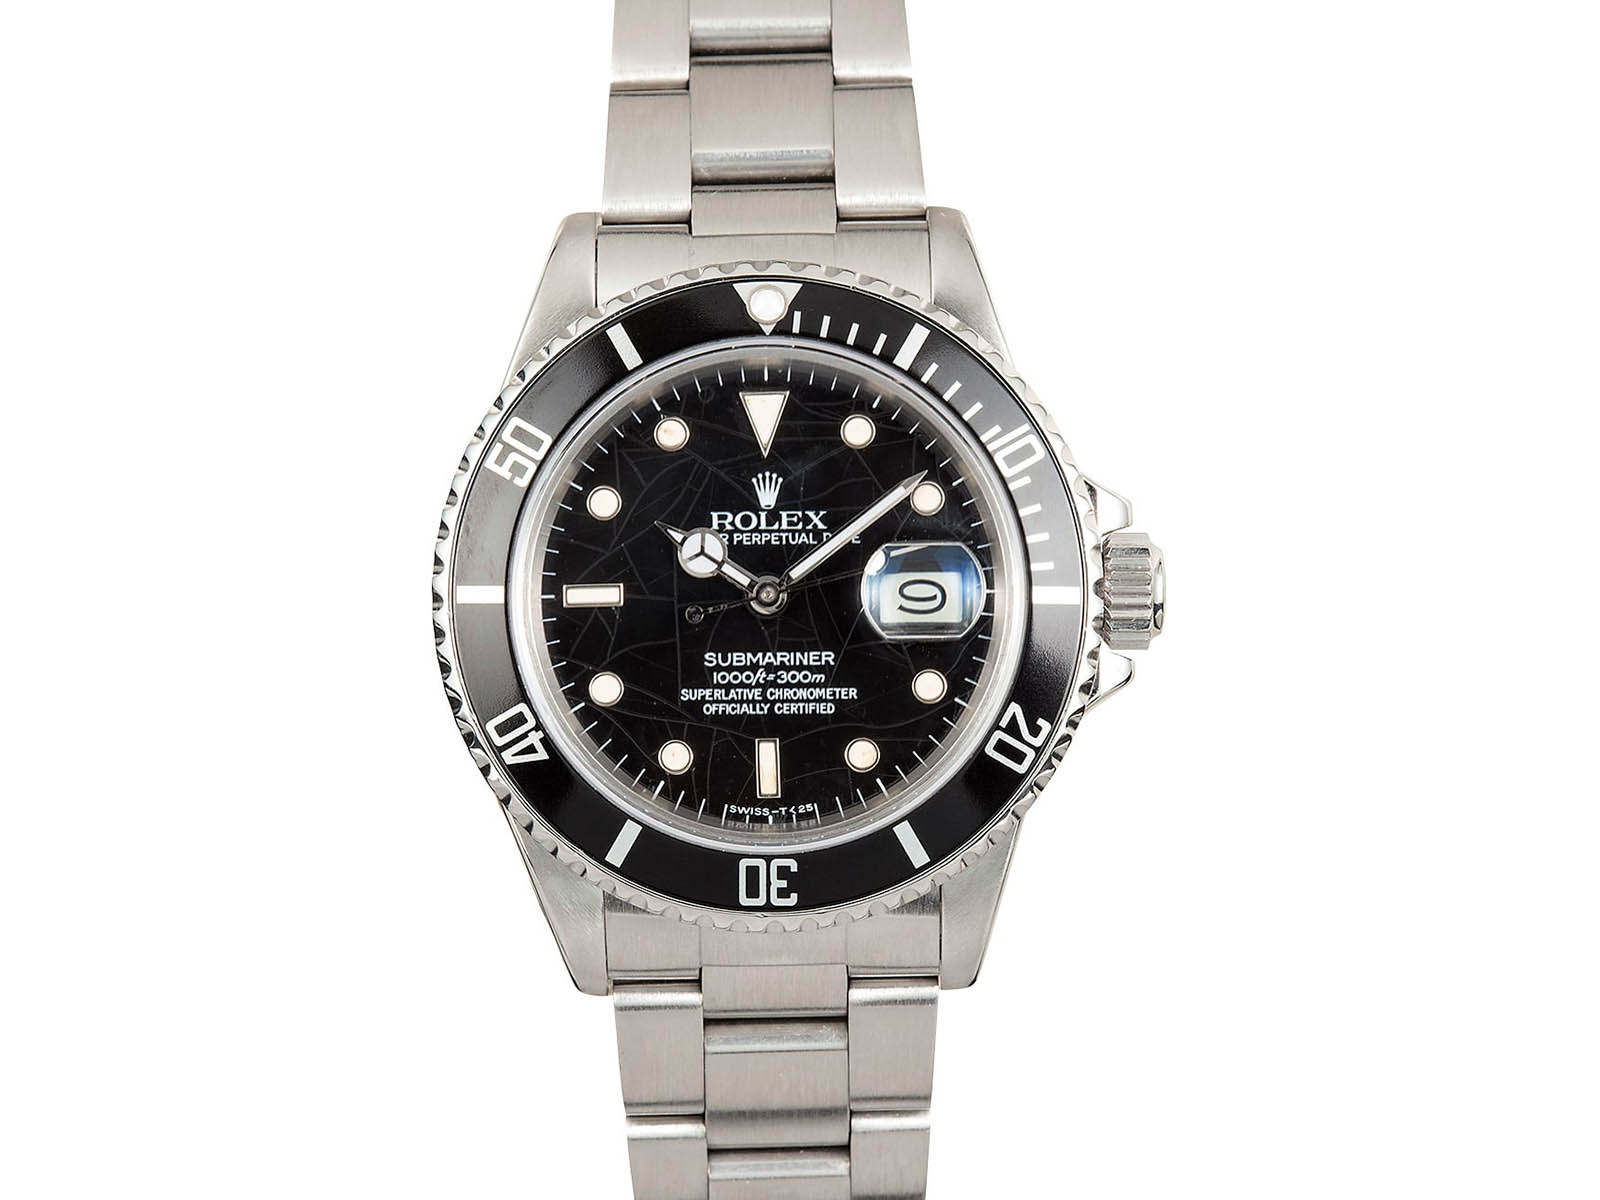 16800-rolex-submariner-spider-dial.jpg